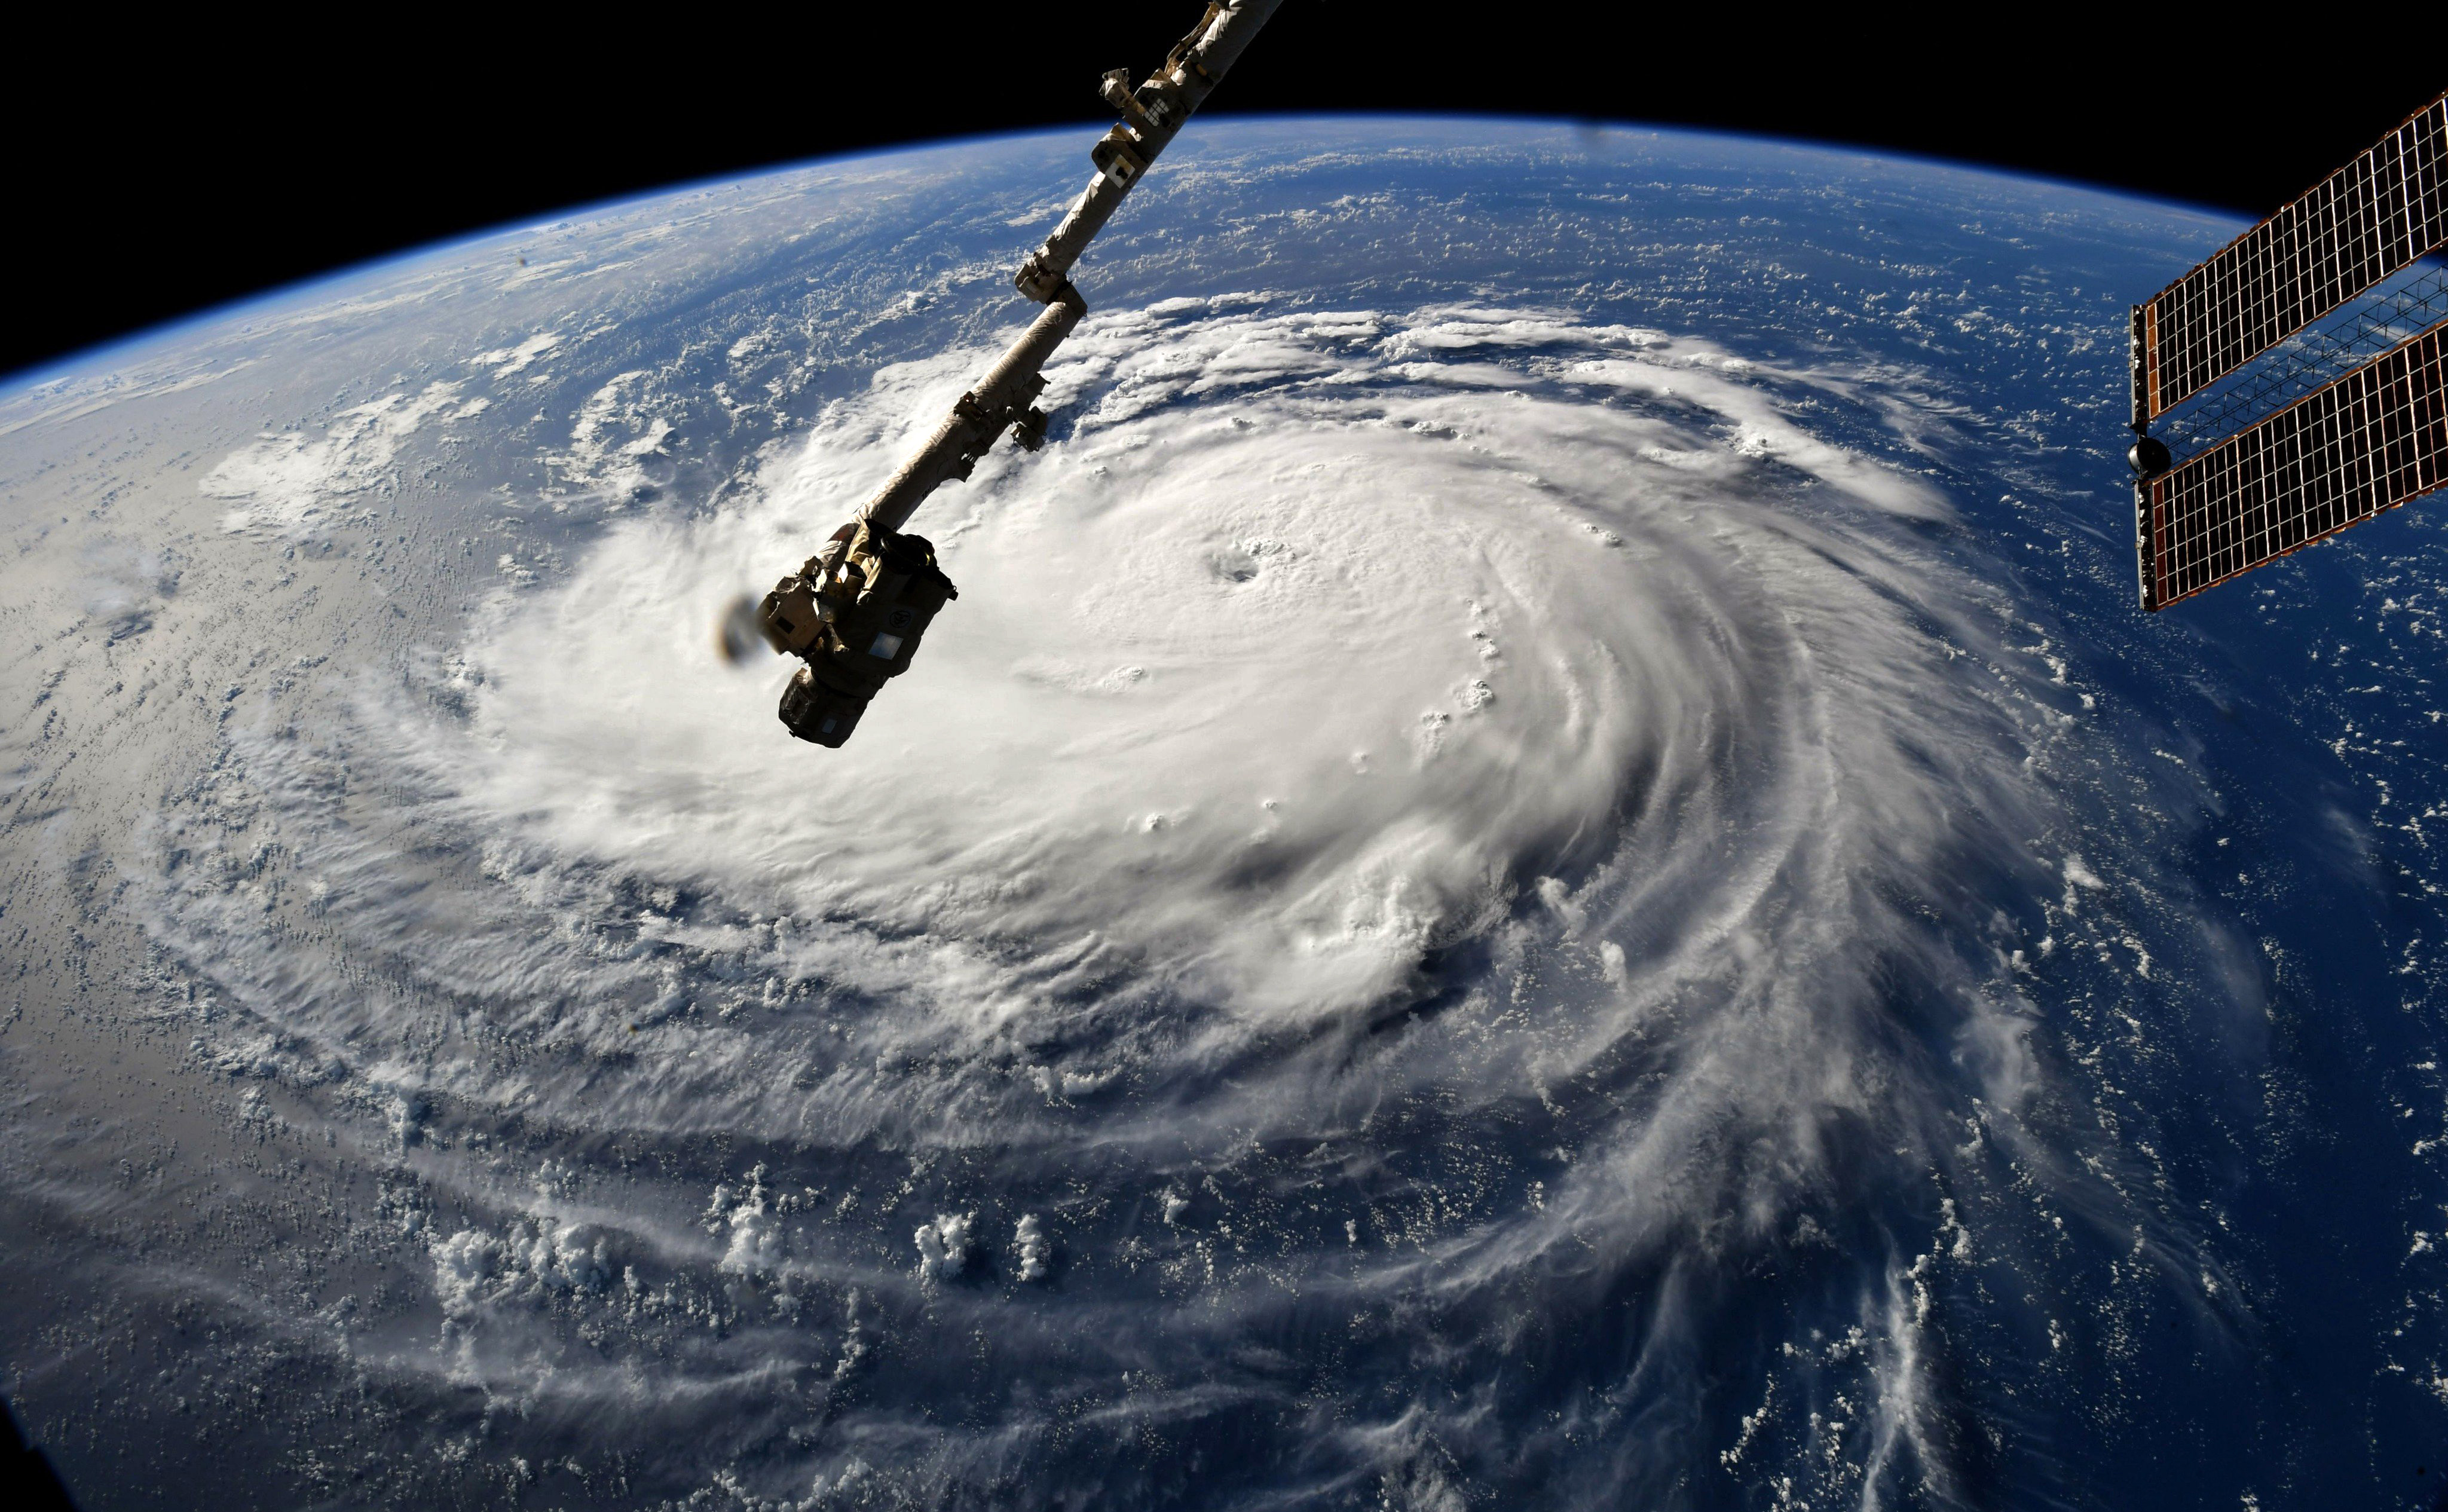 """This NASA handout photo shows a view from the International Space Station of Hurricane Florence off the US east coast in the Atantic Ocean on September 10, 2018.Hurricane Florence threatening the southeastern coast of the United States strengthened Monday morning into a Category 3 """"major"""" hurricane, the National Hurricane Center said.The NHC said the Atlantic hurricane's maximum sustained winds have increased to nearly 115 miles per hour (185 kilometers per hour) with higher gusts.""""Florence is expected to be an extremely dangerous major hurricane through Thursday,"""" it said. / AFP PHOTO / NASA / Handout AND Ricky ARNOLD / RESTRICTED TO EDITORIAL USE - MANDATORY CREDIT """"AFP PHOTO / NASA / RICKY ARNOLD"""" - NO MARKETING NO ADVERTISING CAMPAIGNS - DISTRIBUTED AS A SERVICE TO CLIENTS"""